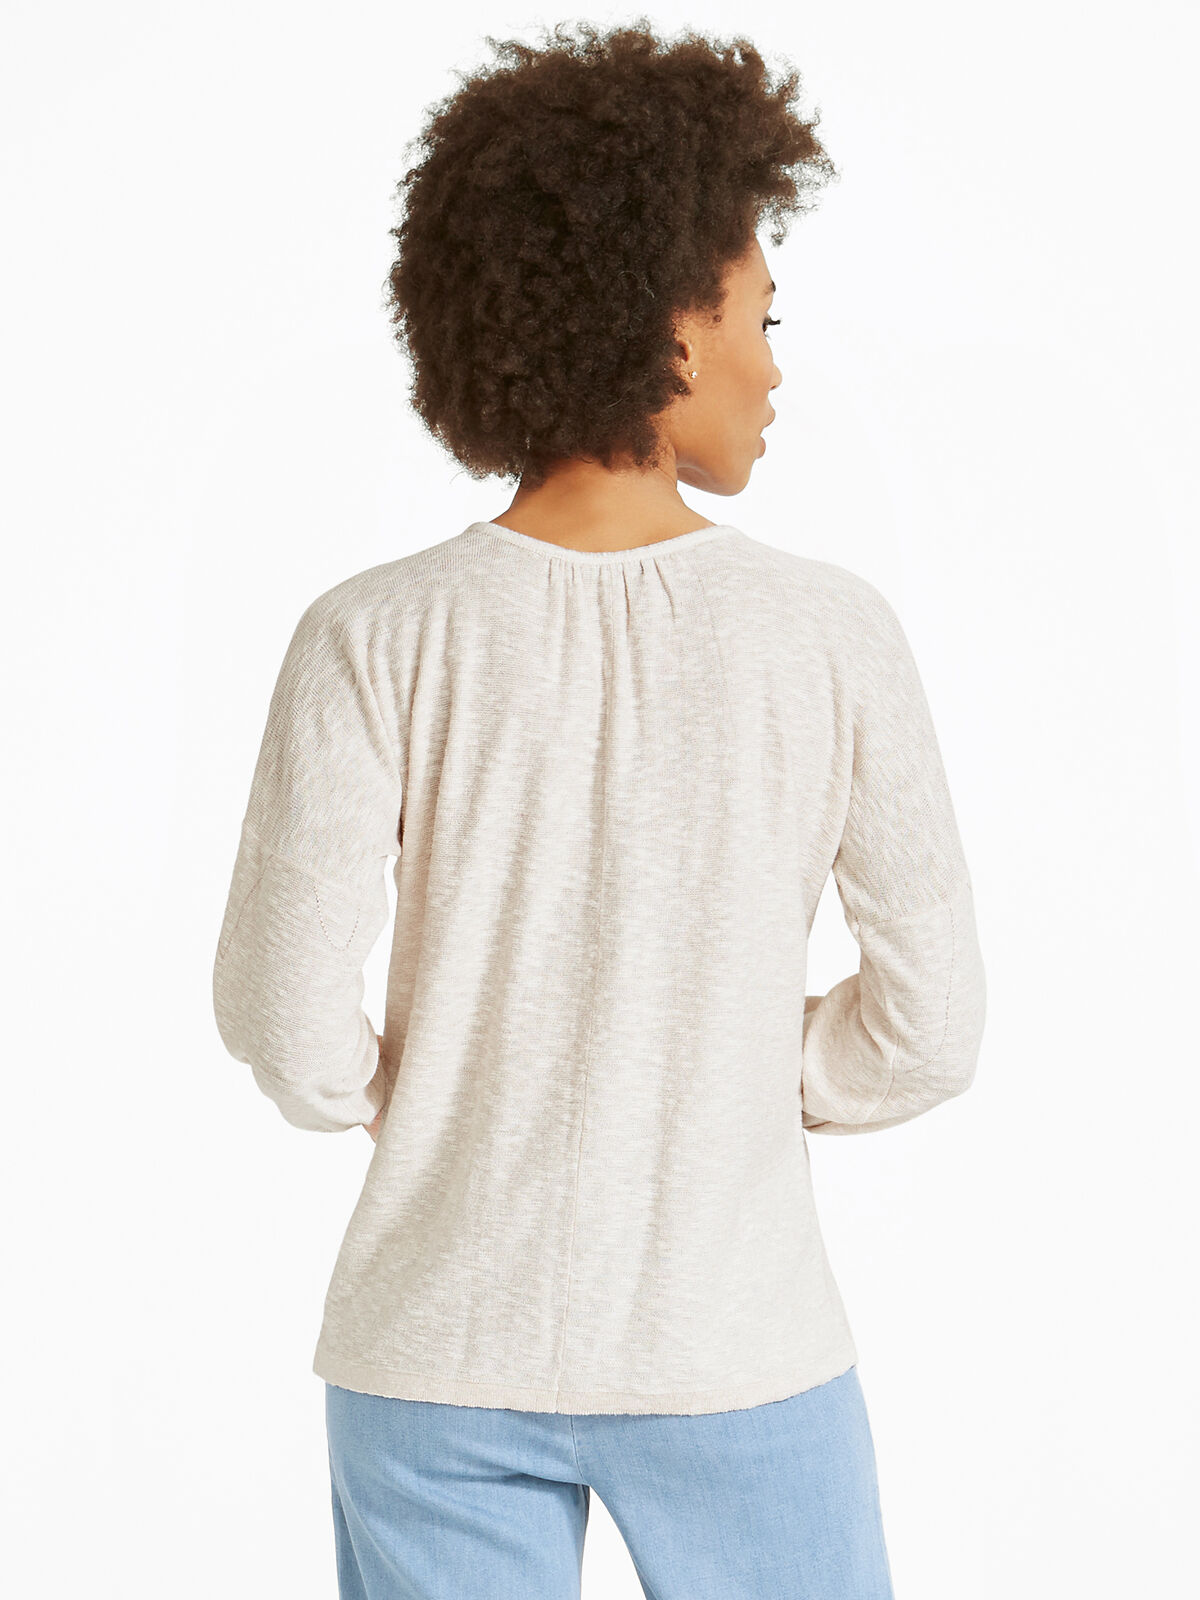 Etched Florals Sweater